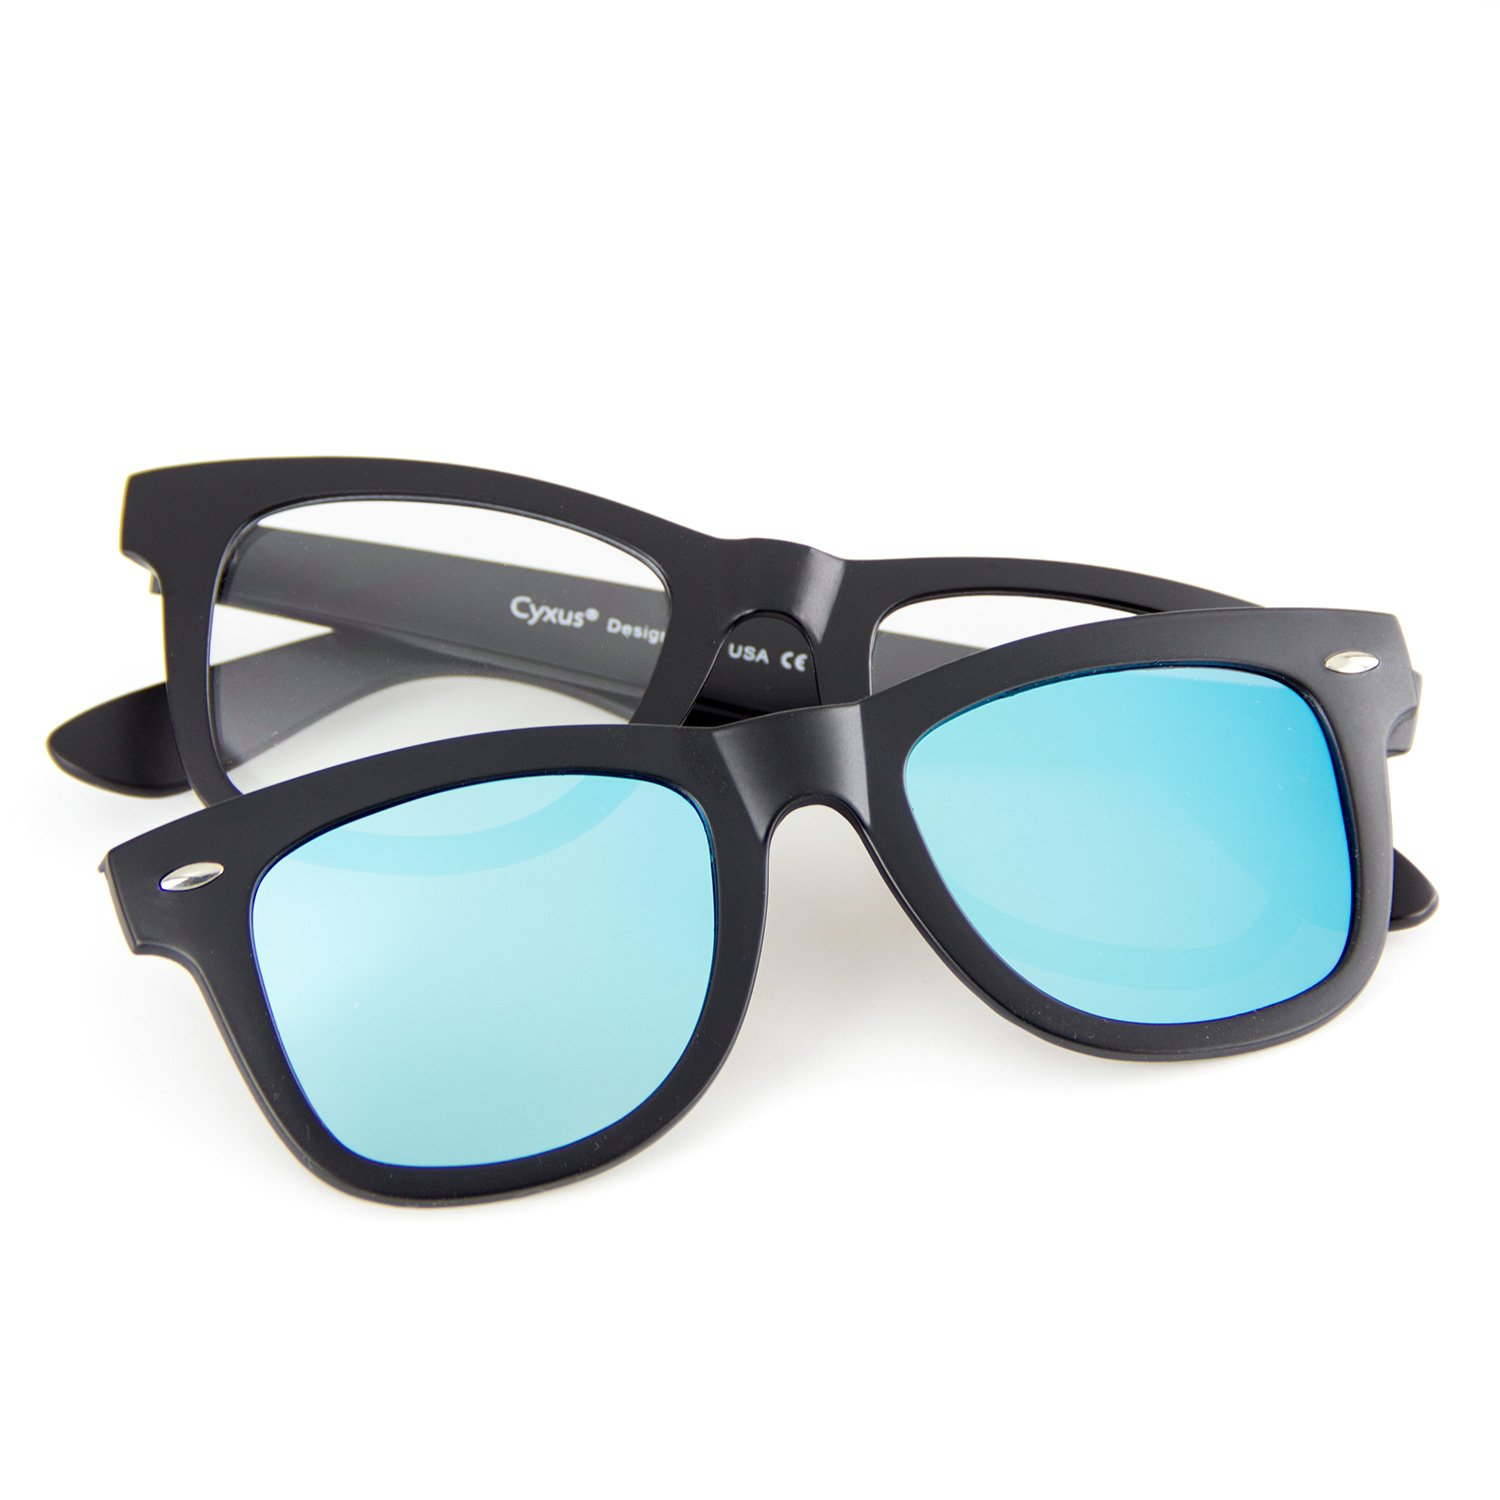 0266f775f6 Amazon.com  Cyxus  Two in One SET  Blue Light Blocking Glasses with Clip On Polarized  Sunglasses